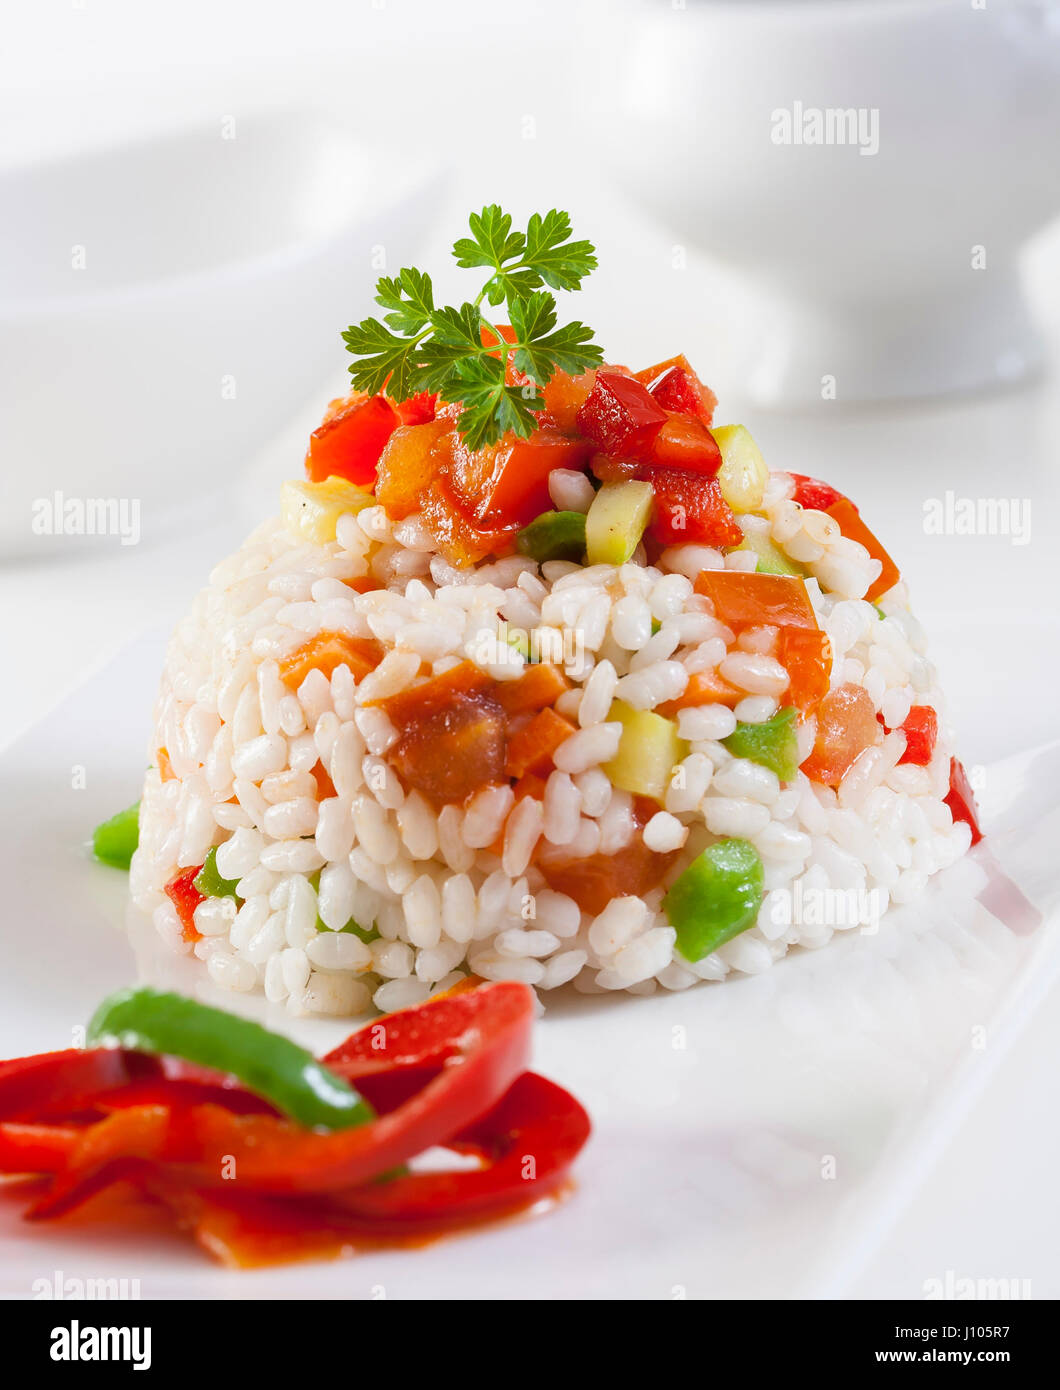 Rice with peas and red pepper. - Stock Image